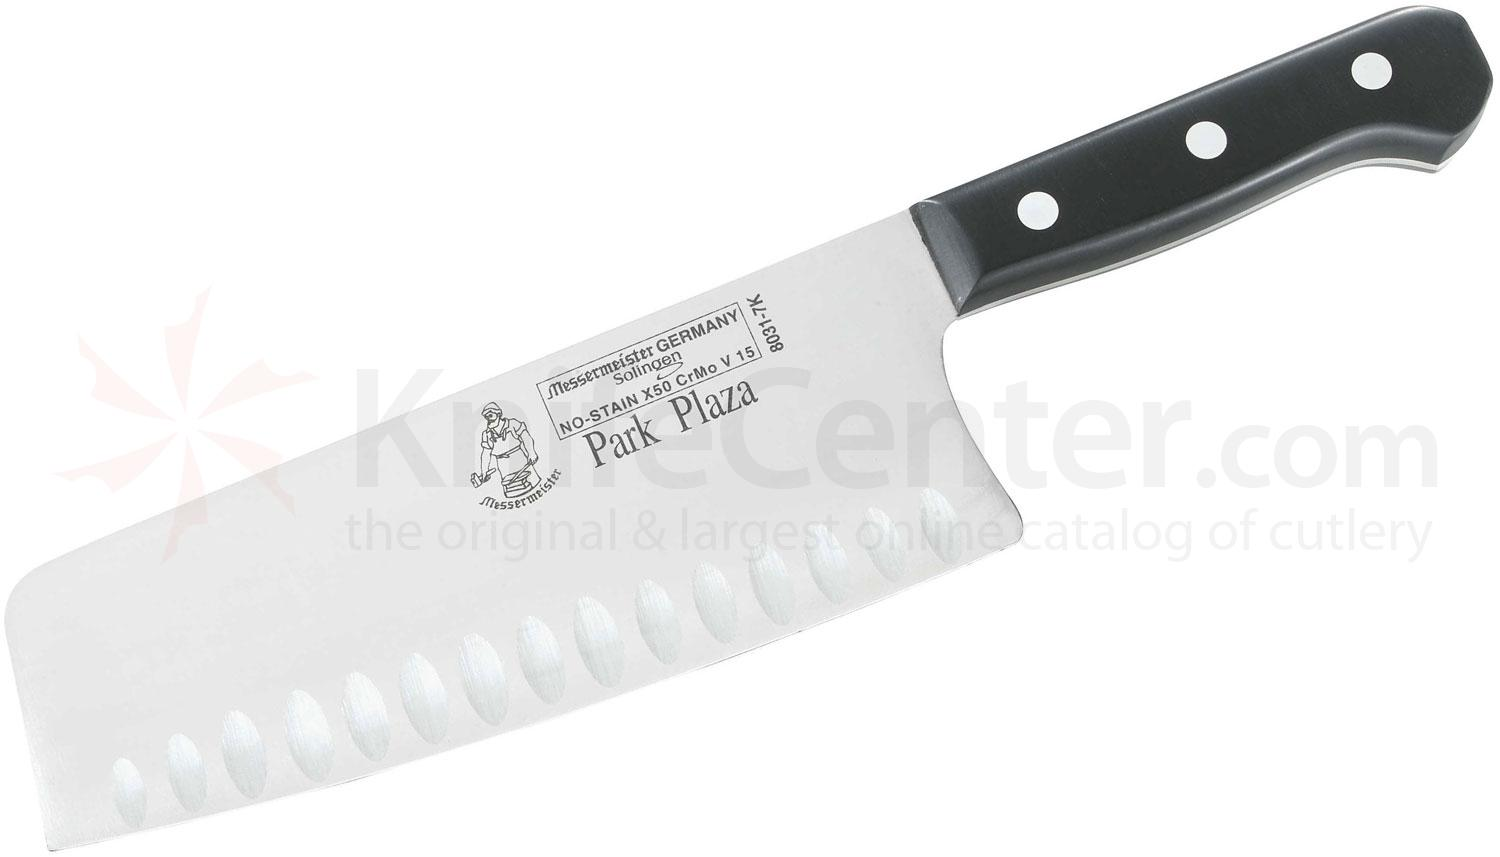 Messermeister Park Plaza 7 inch Granton Vegetable Knife